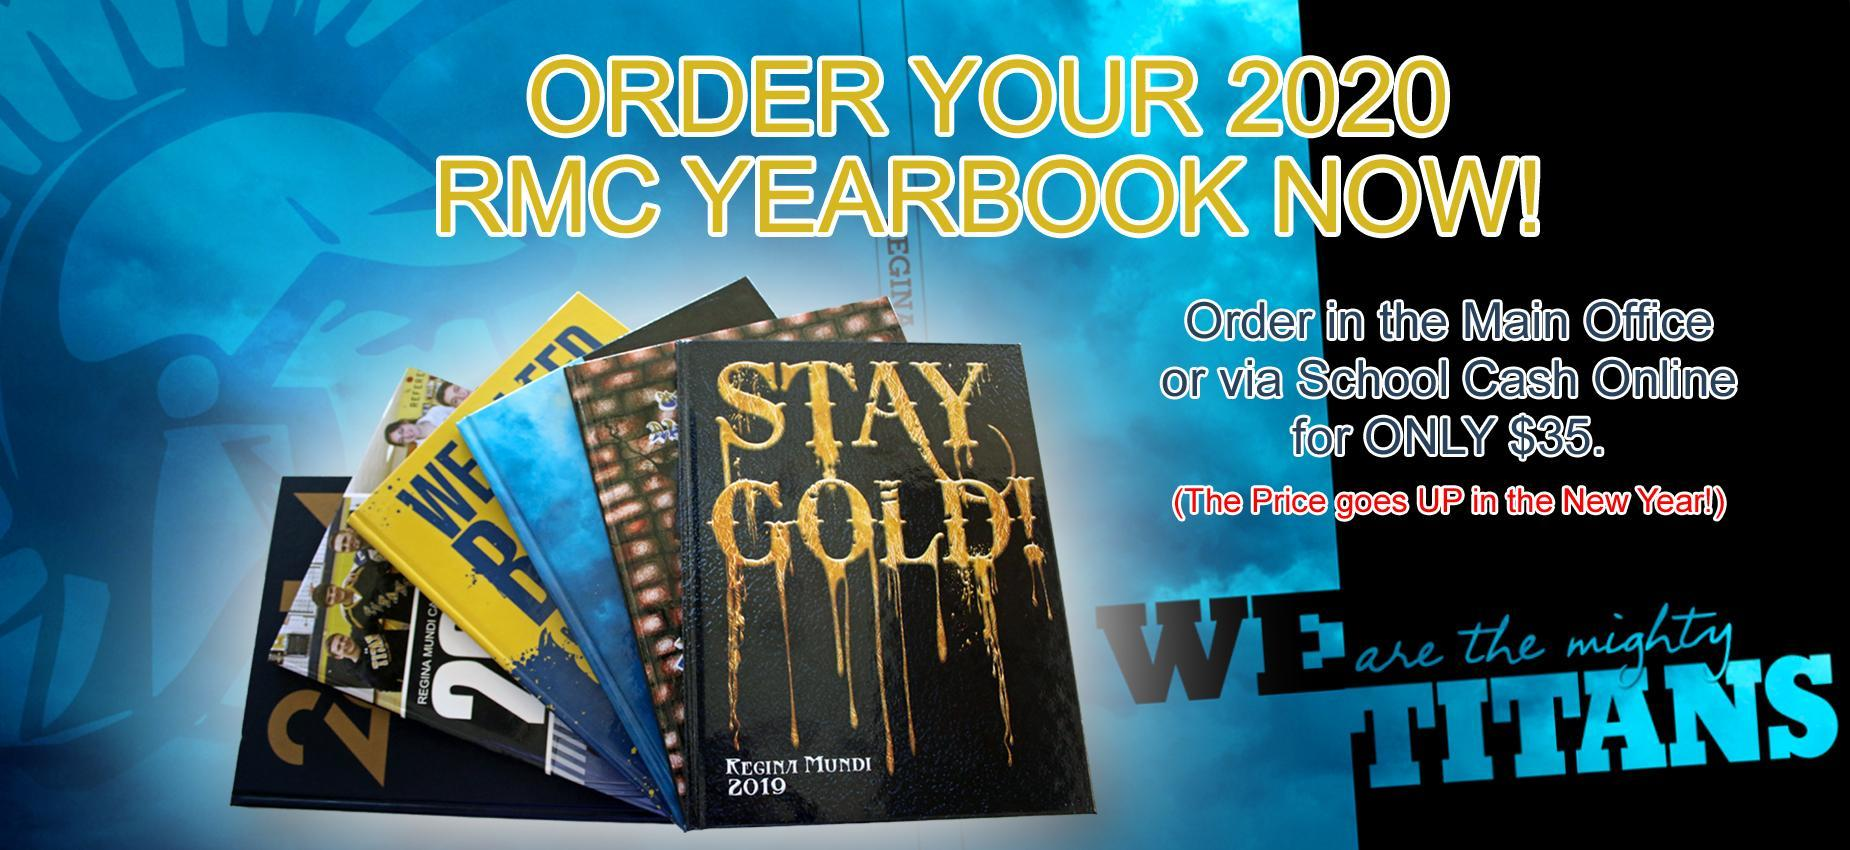 2020 RMC Yearbook